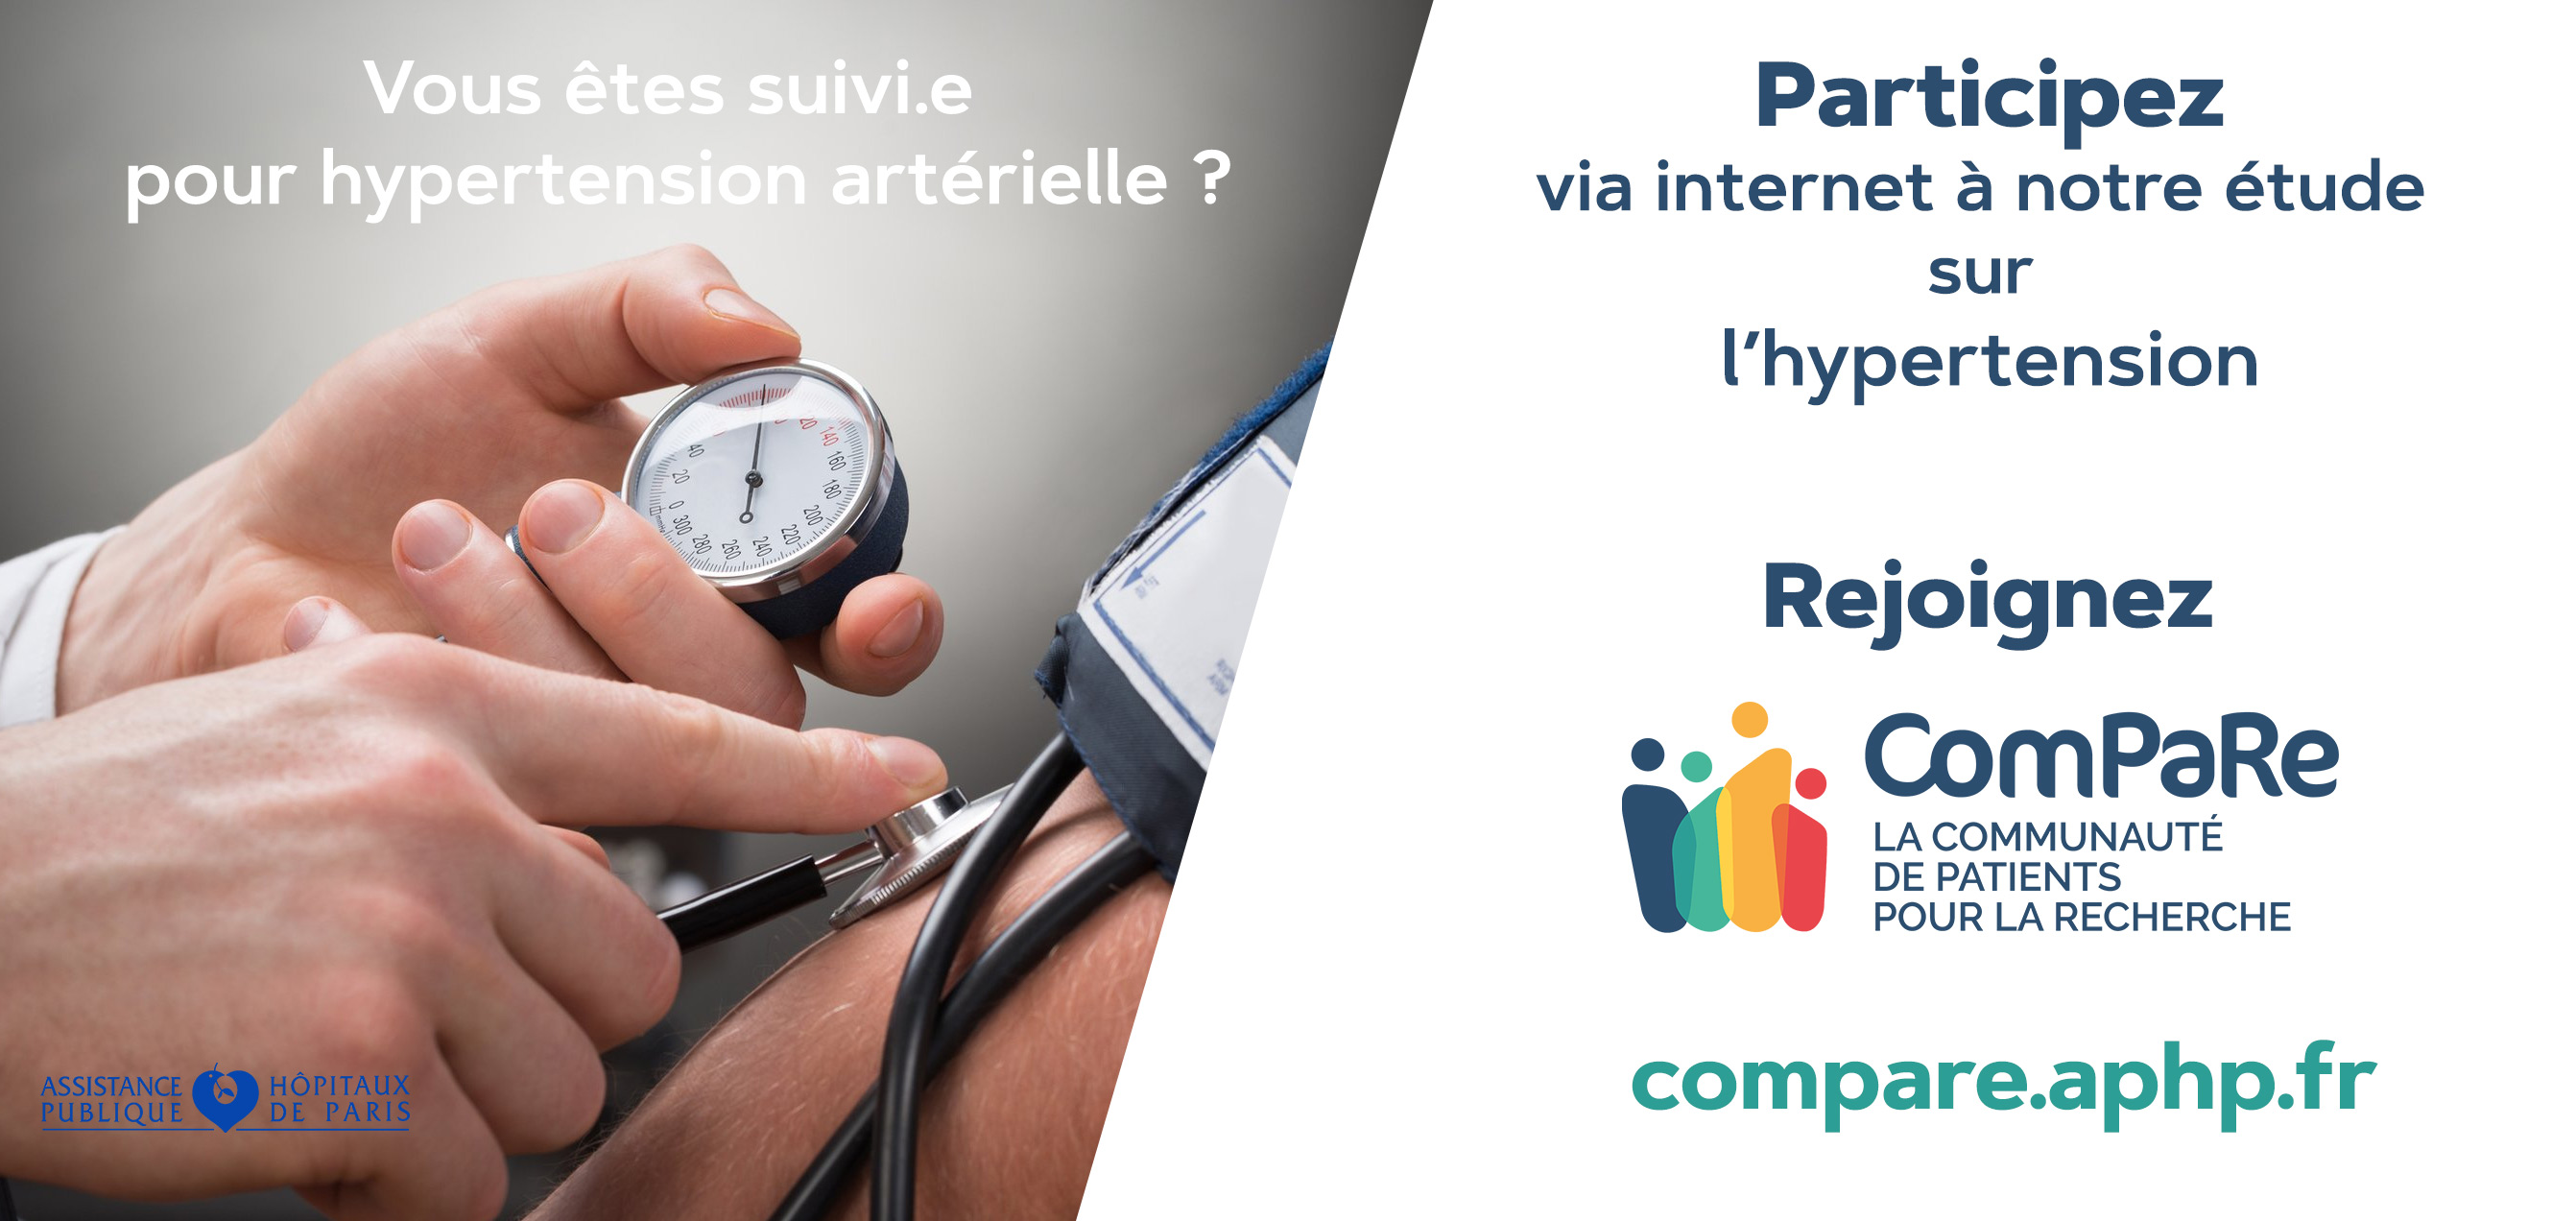 Hypertension : avec ComPaRe, l'AP-HP invite les patients à contribuer à la recherche